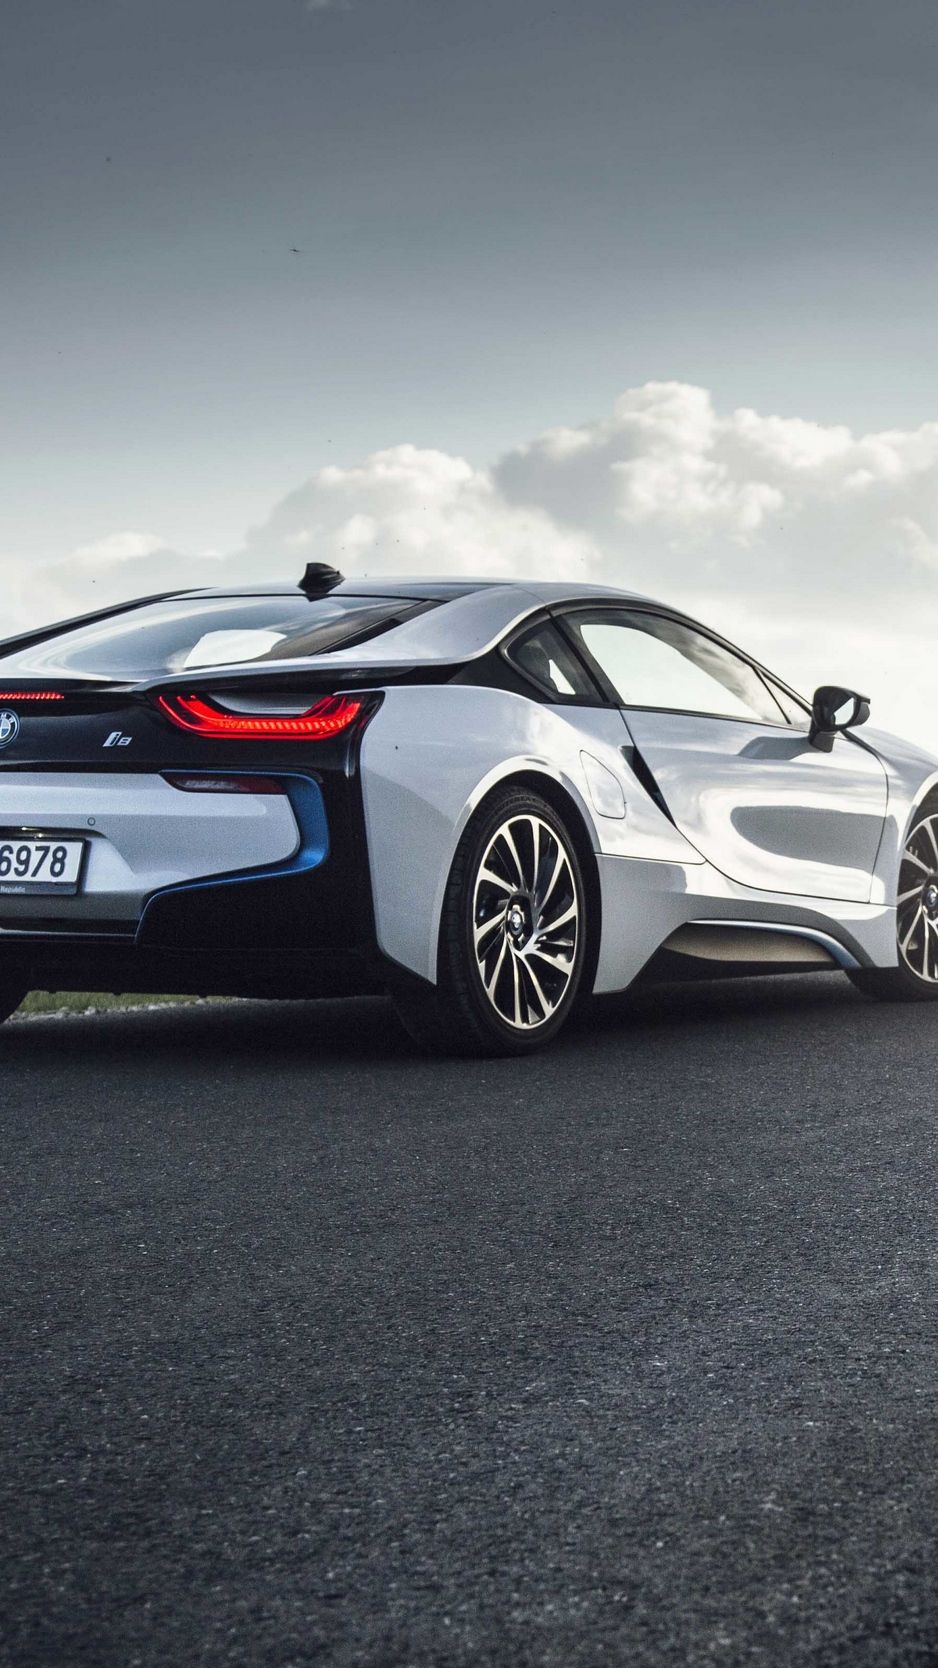 Bmw I8 Iphone Wallpapers Top Free Bmw I8 Iphone Backgrounds Wallpaperaccess